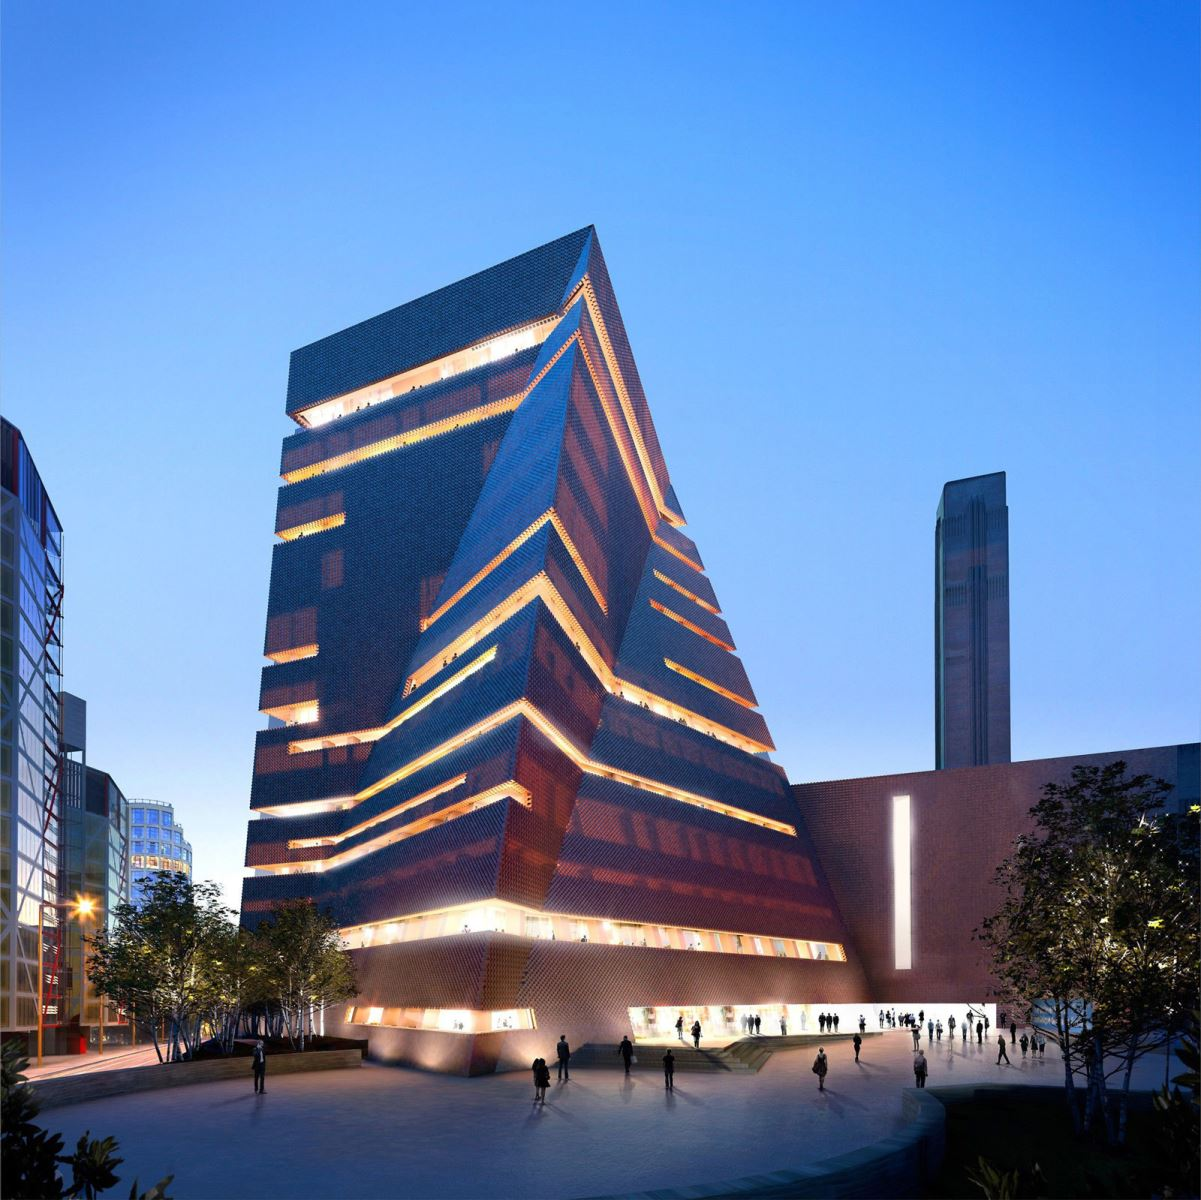 The Tate Modern (London)